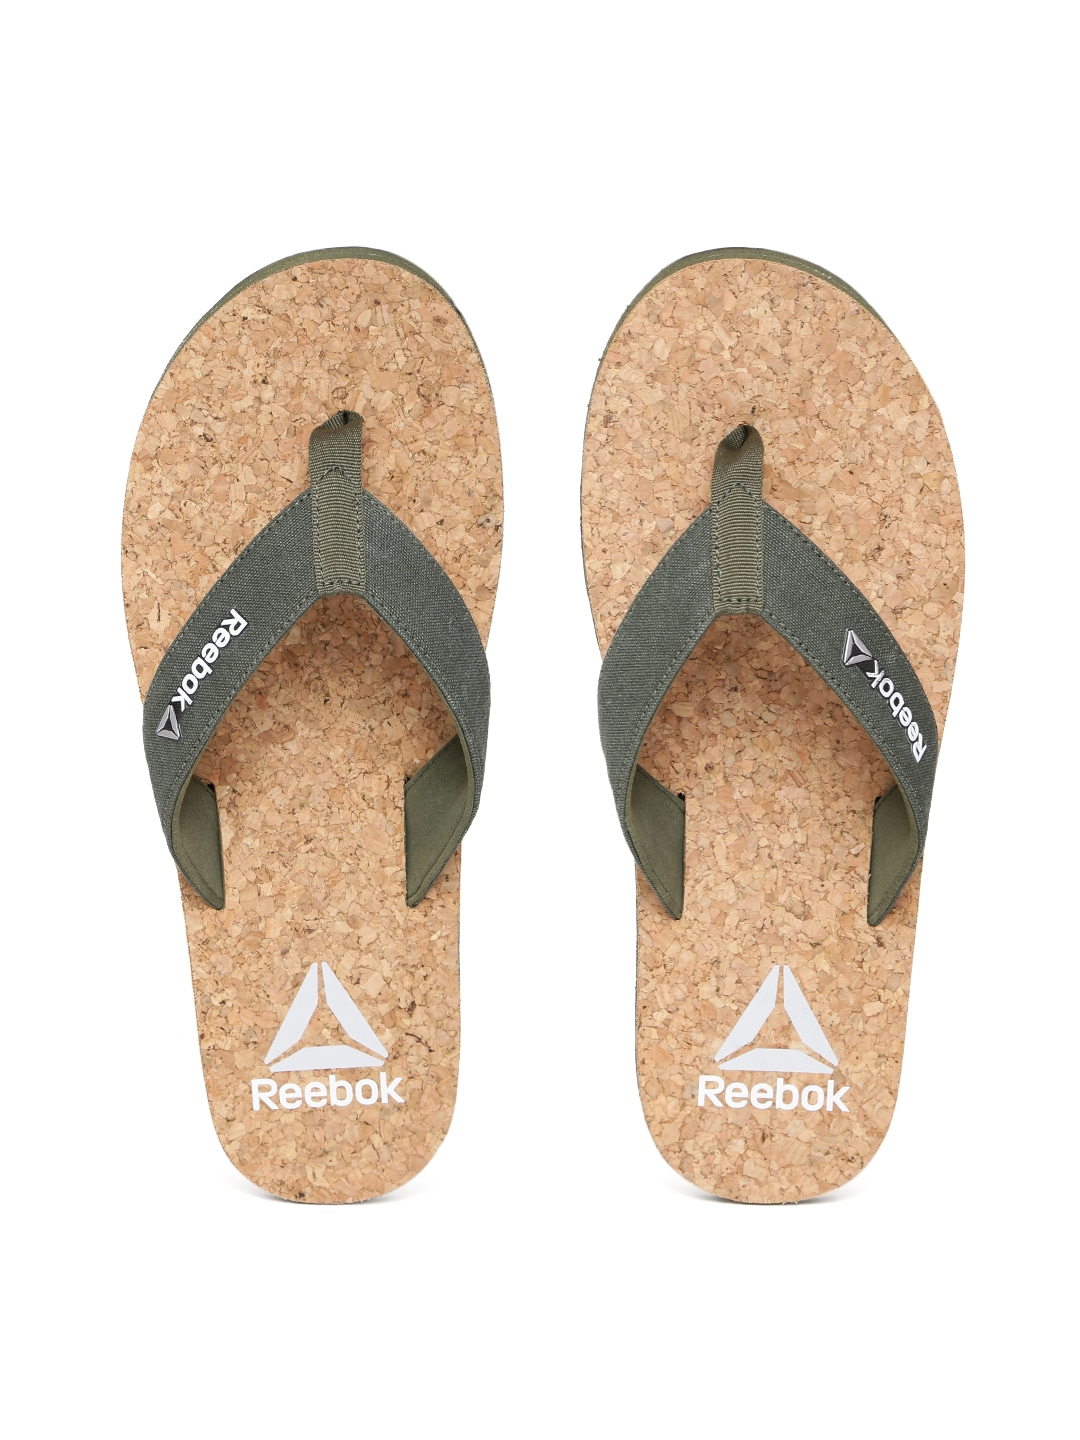 5d6bc0fac Buy Reebok Men Navy   Brown Cork Flip Flops - Flip Flops for Men ...